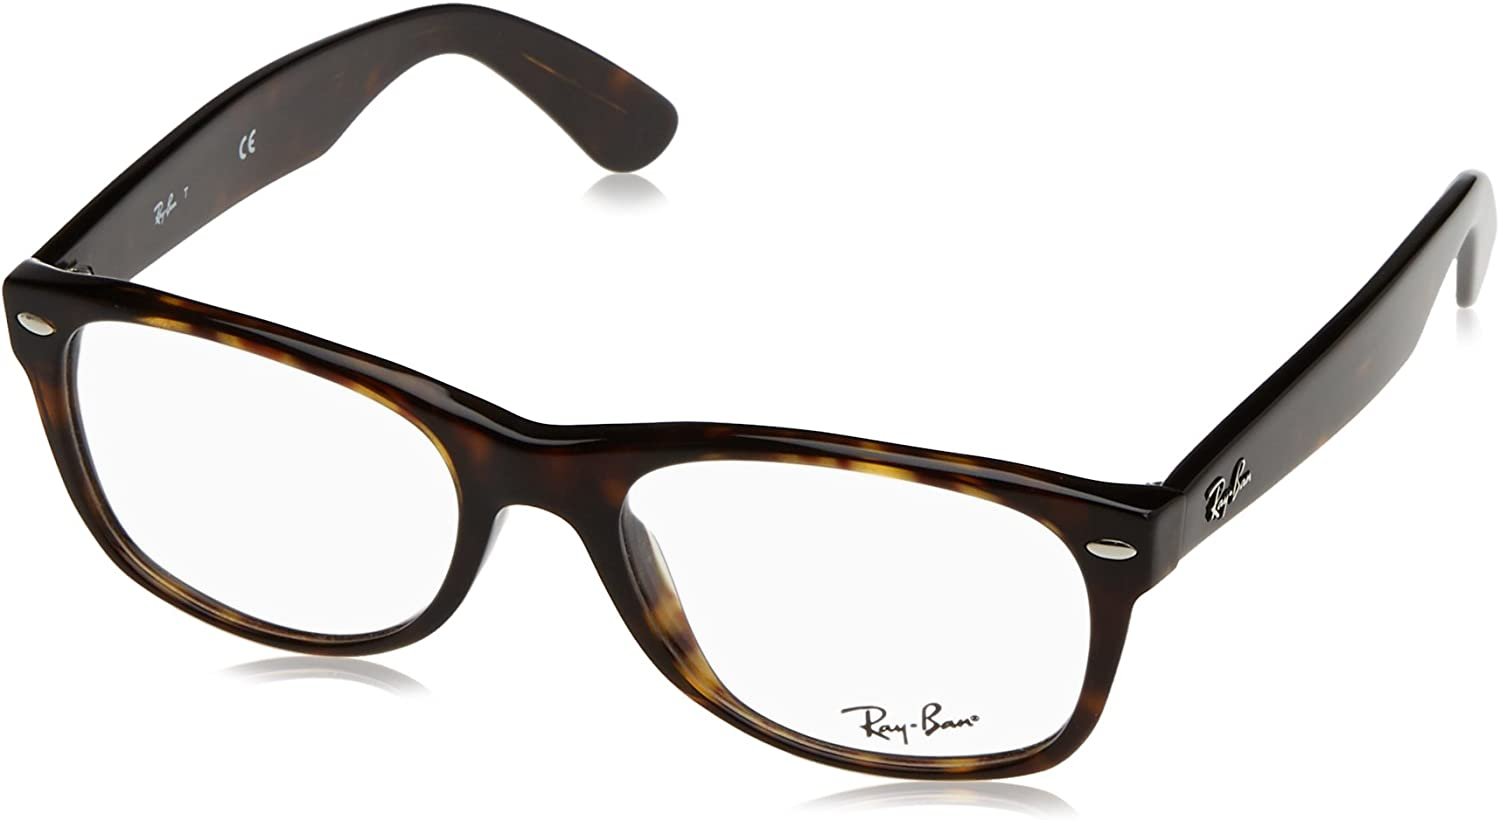 Ray-Ban Optical New Wayfarer RX5184 C54